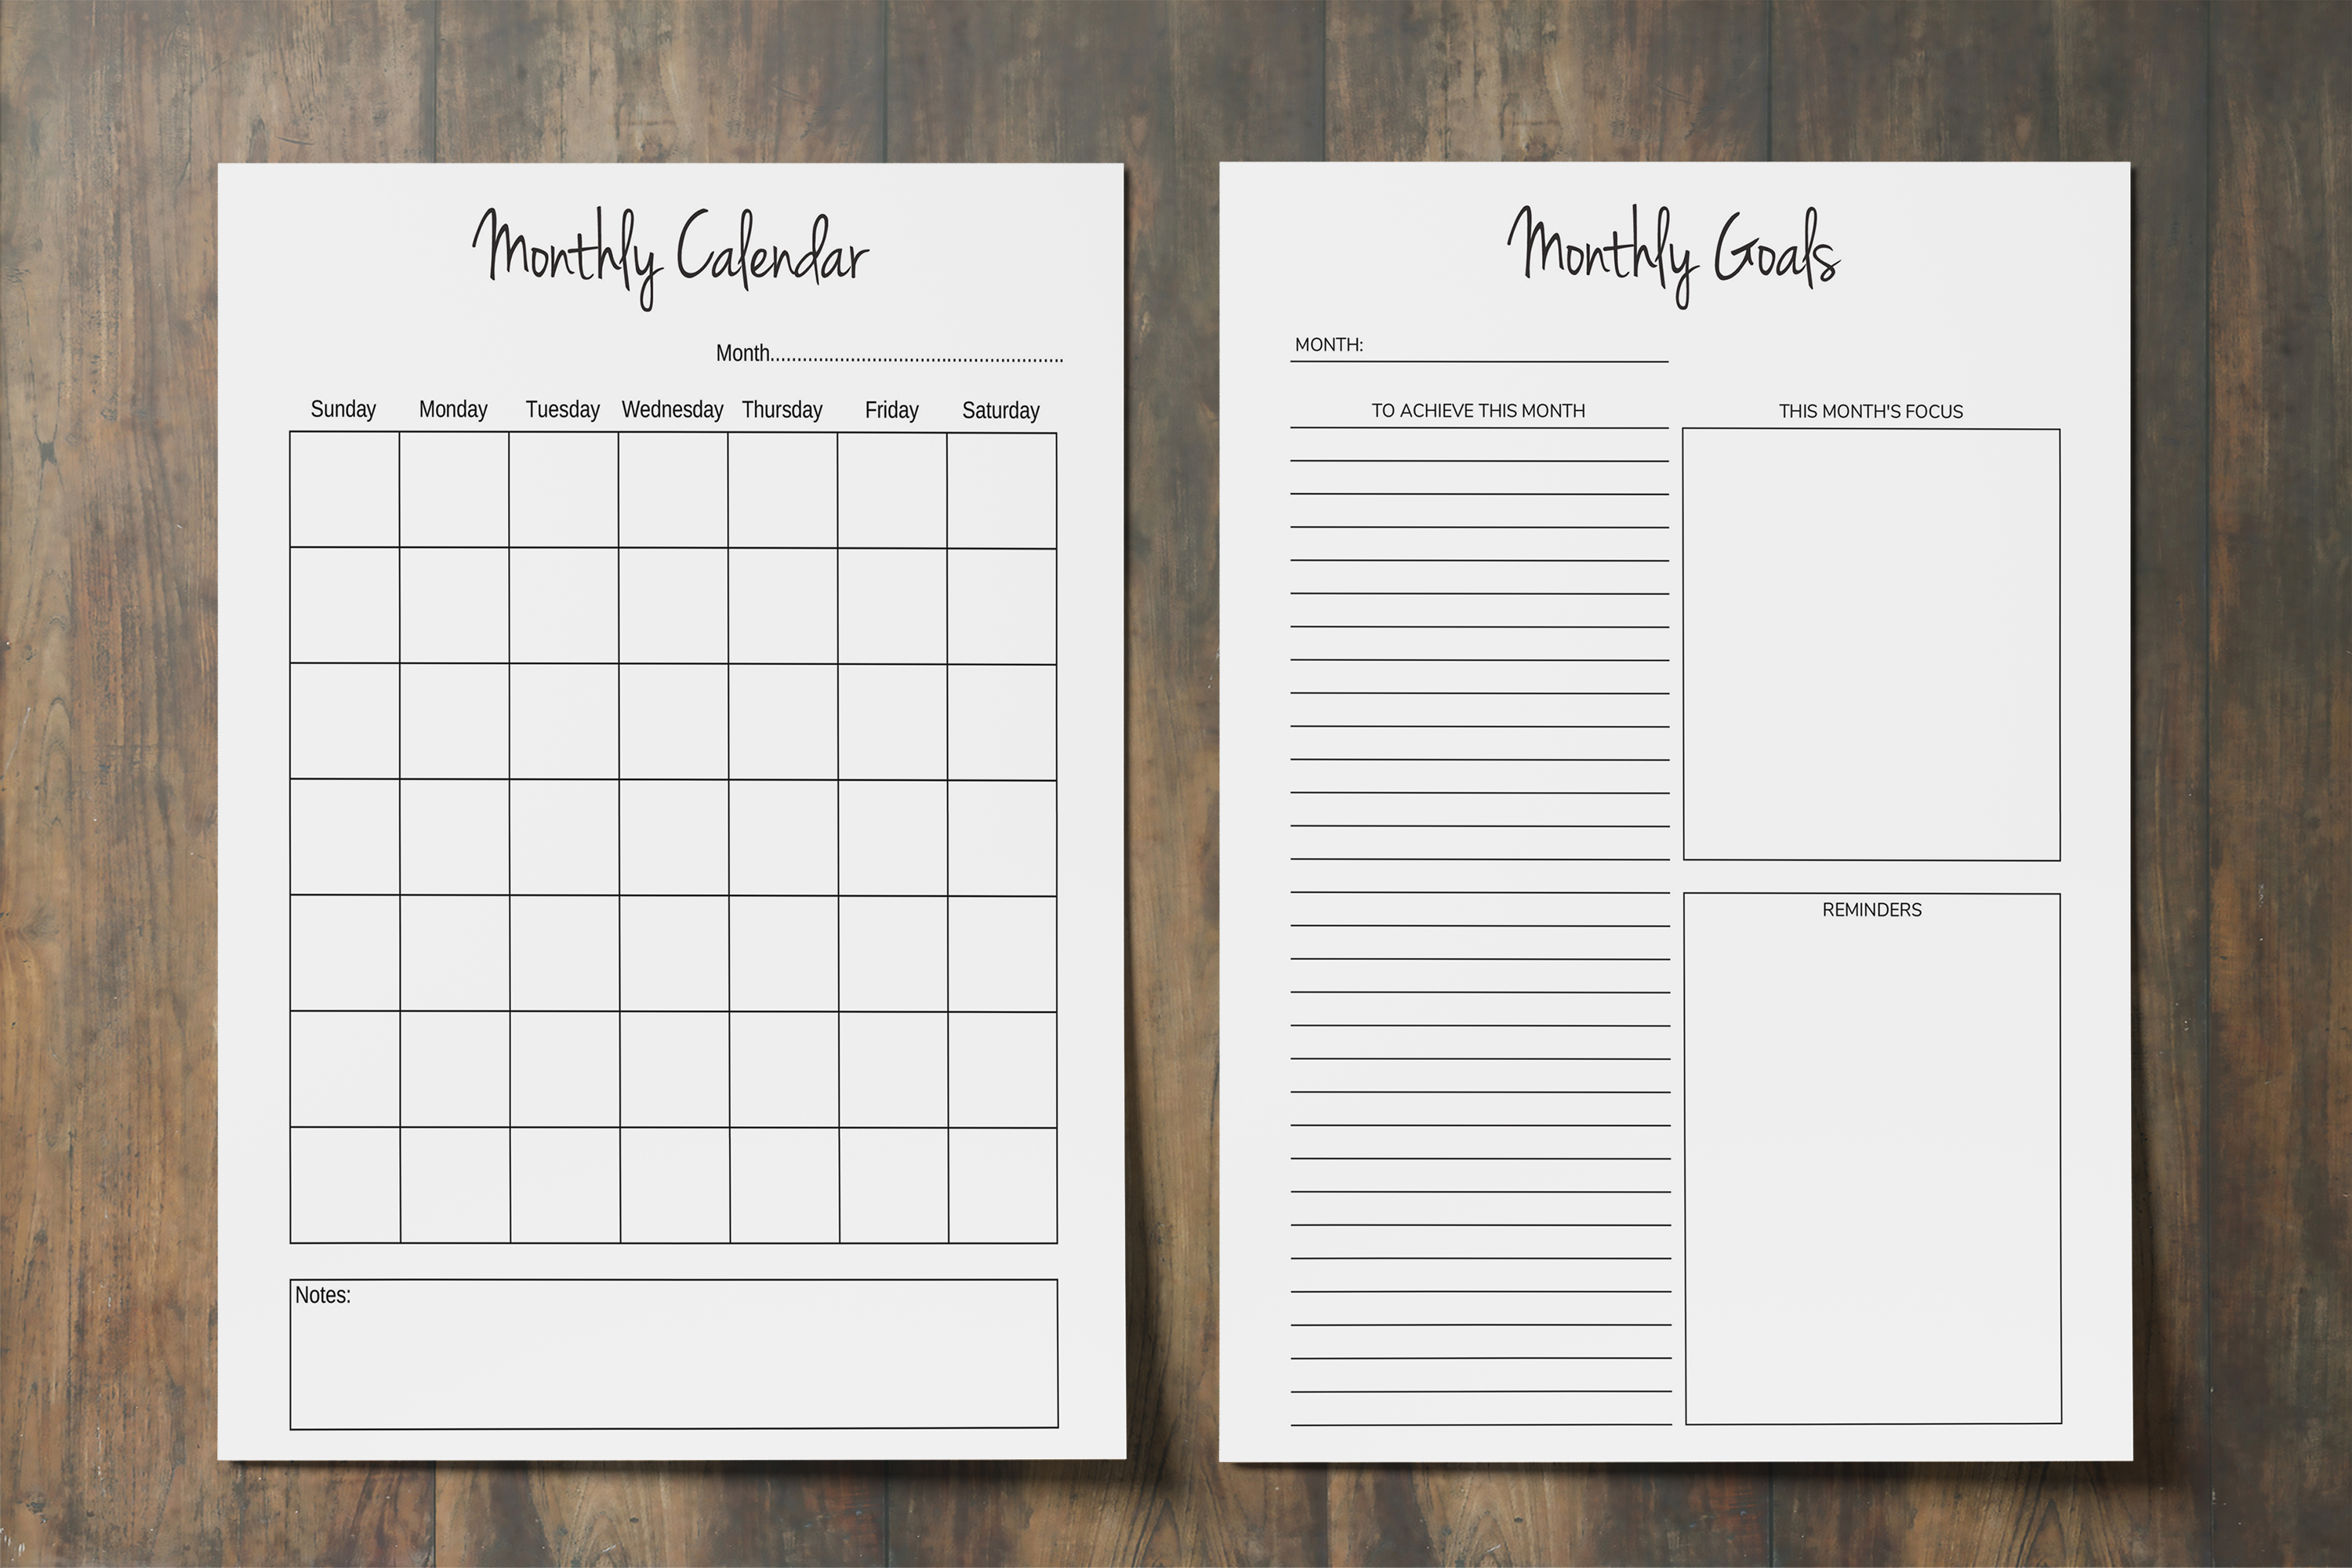 Productivity Planner Printable, Goal Plan, Time Management example image 4